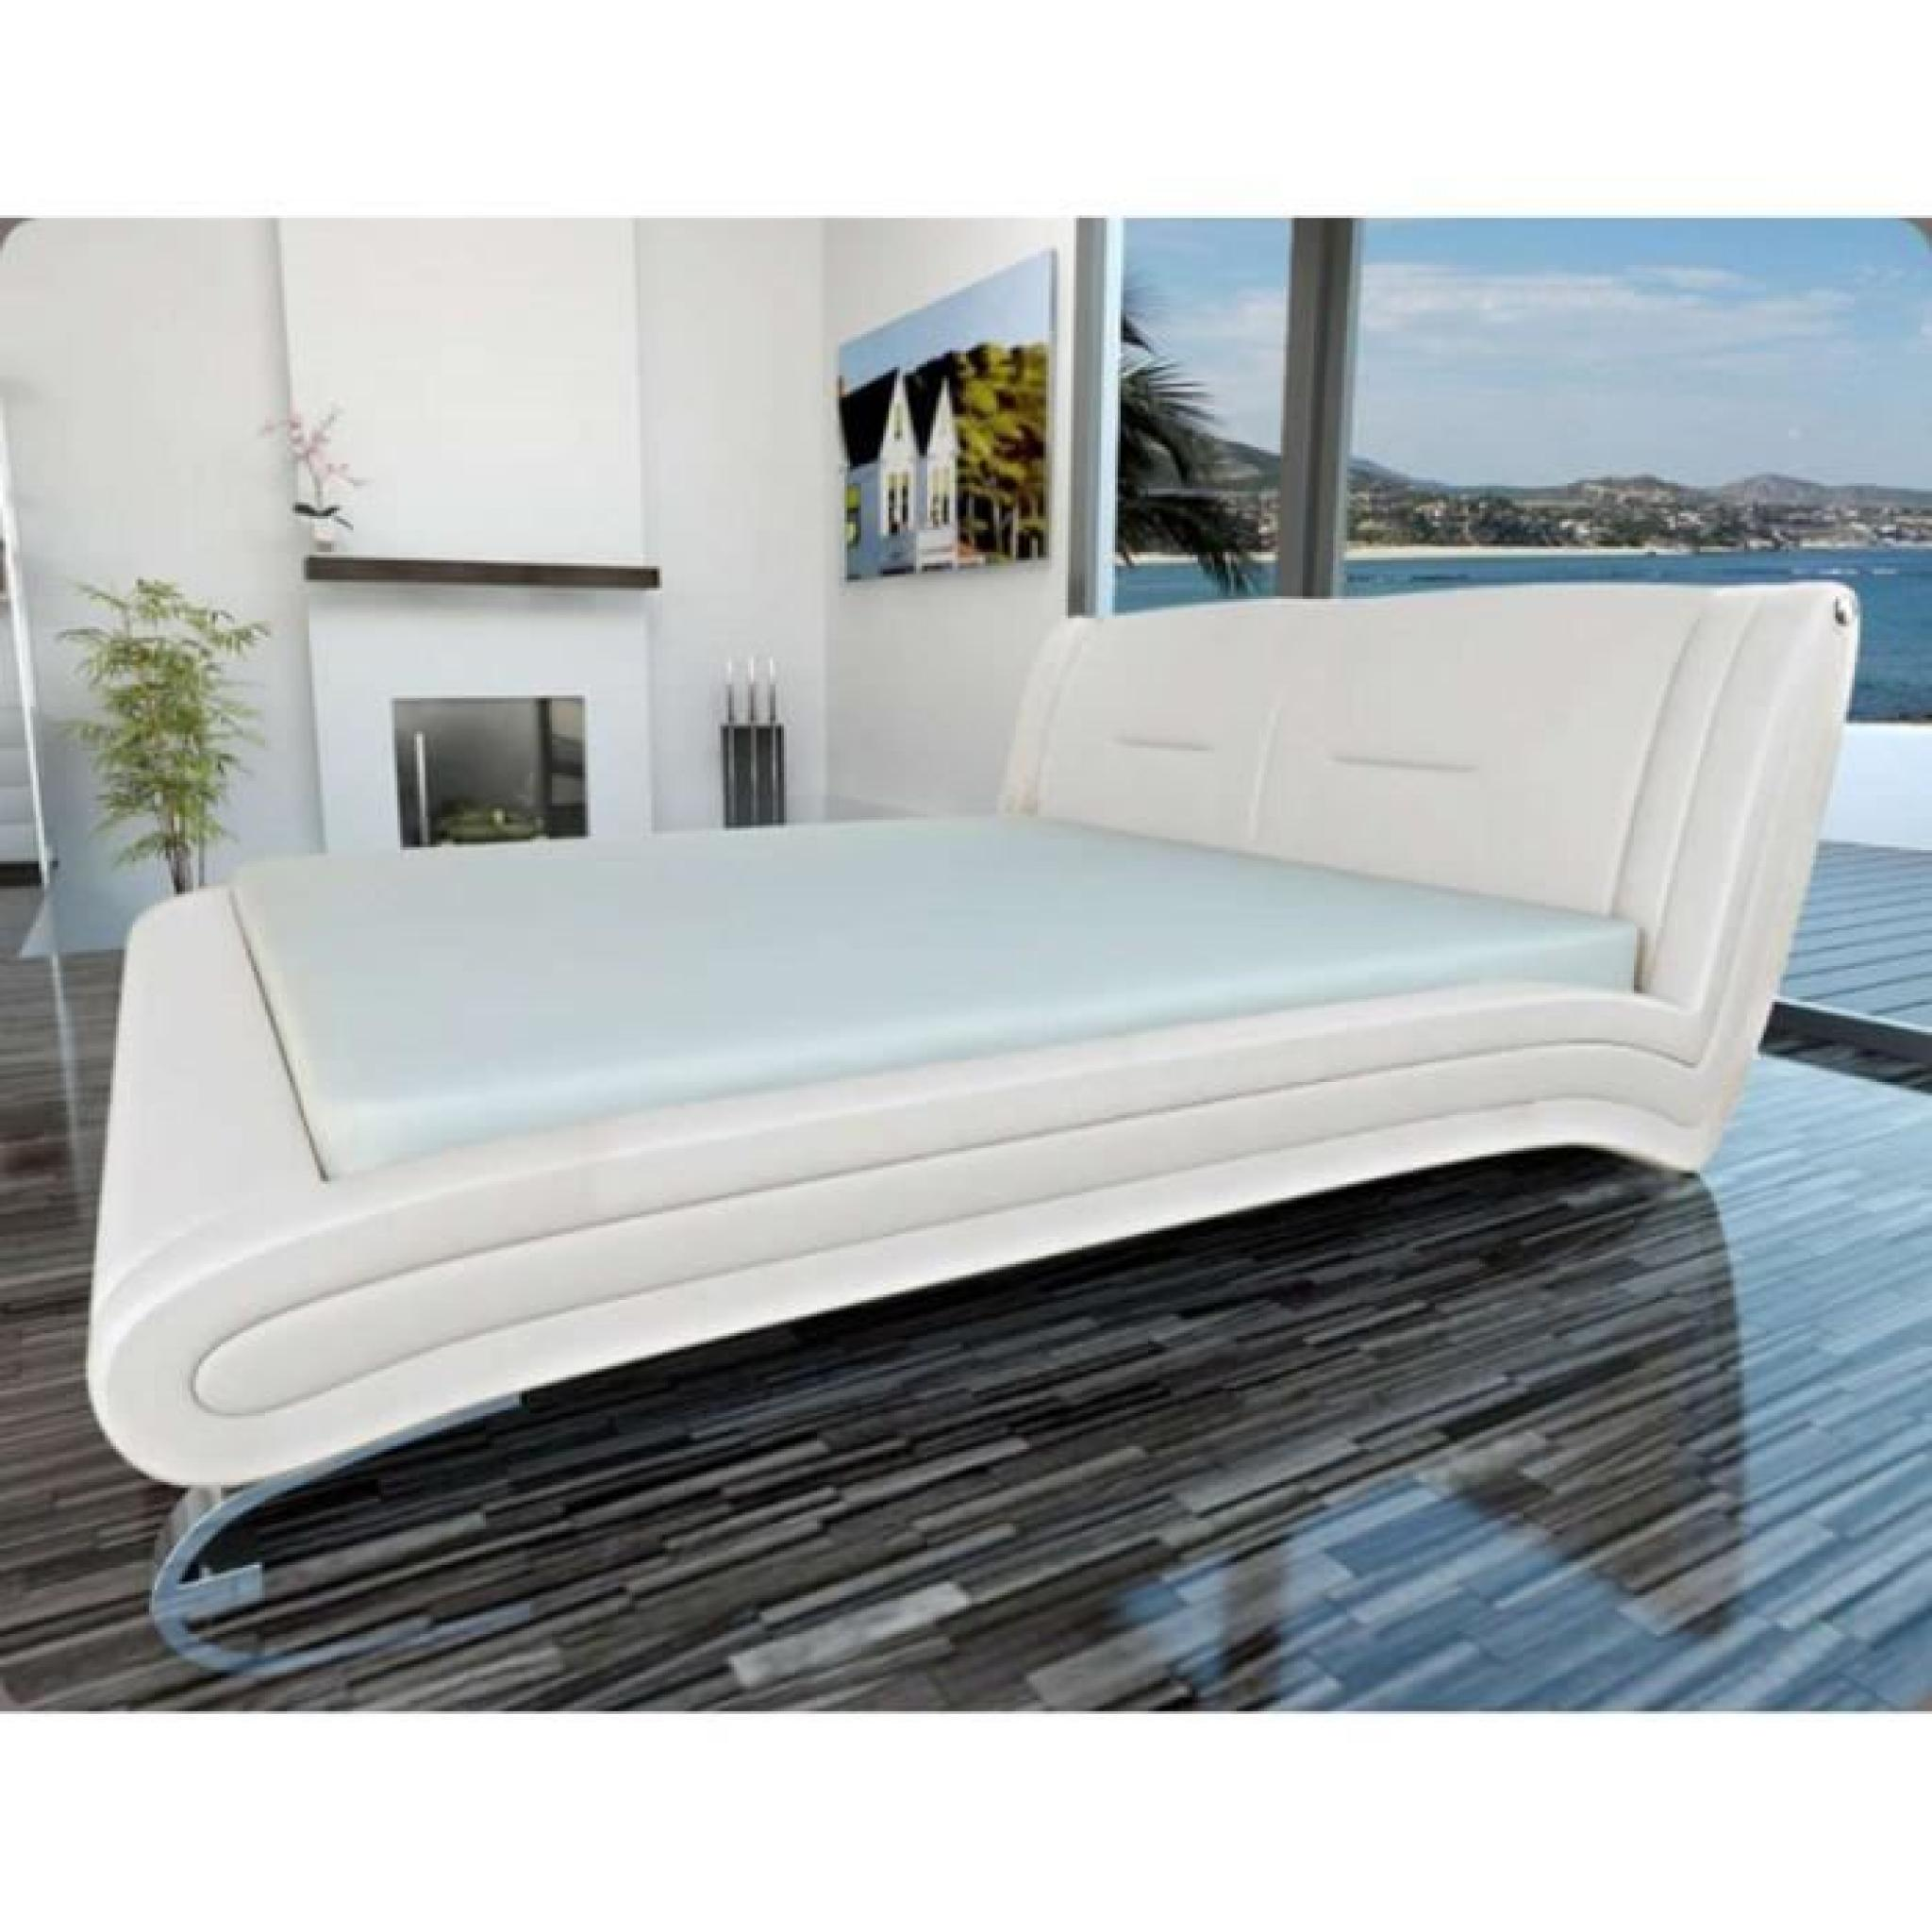 justhome masimo blanc lit rembourr en cuir cologique taille 200 x 200 cm achat vente lit. Black Bedroom Furniture Sets. Home Design Ideas